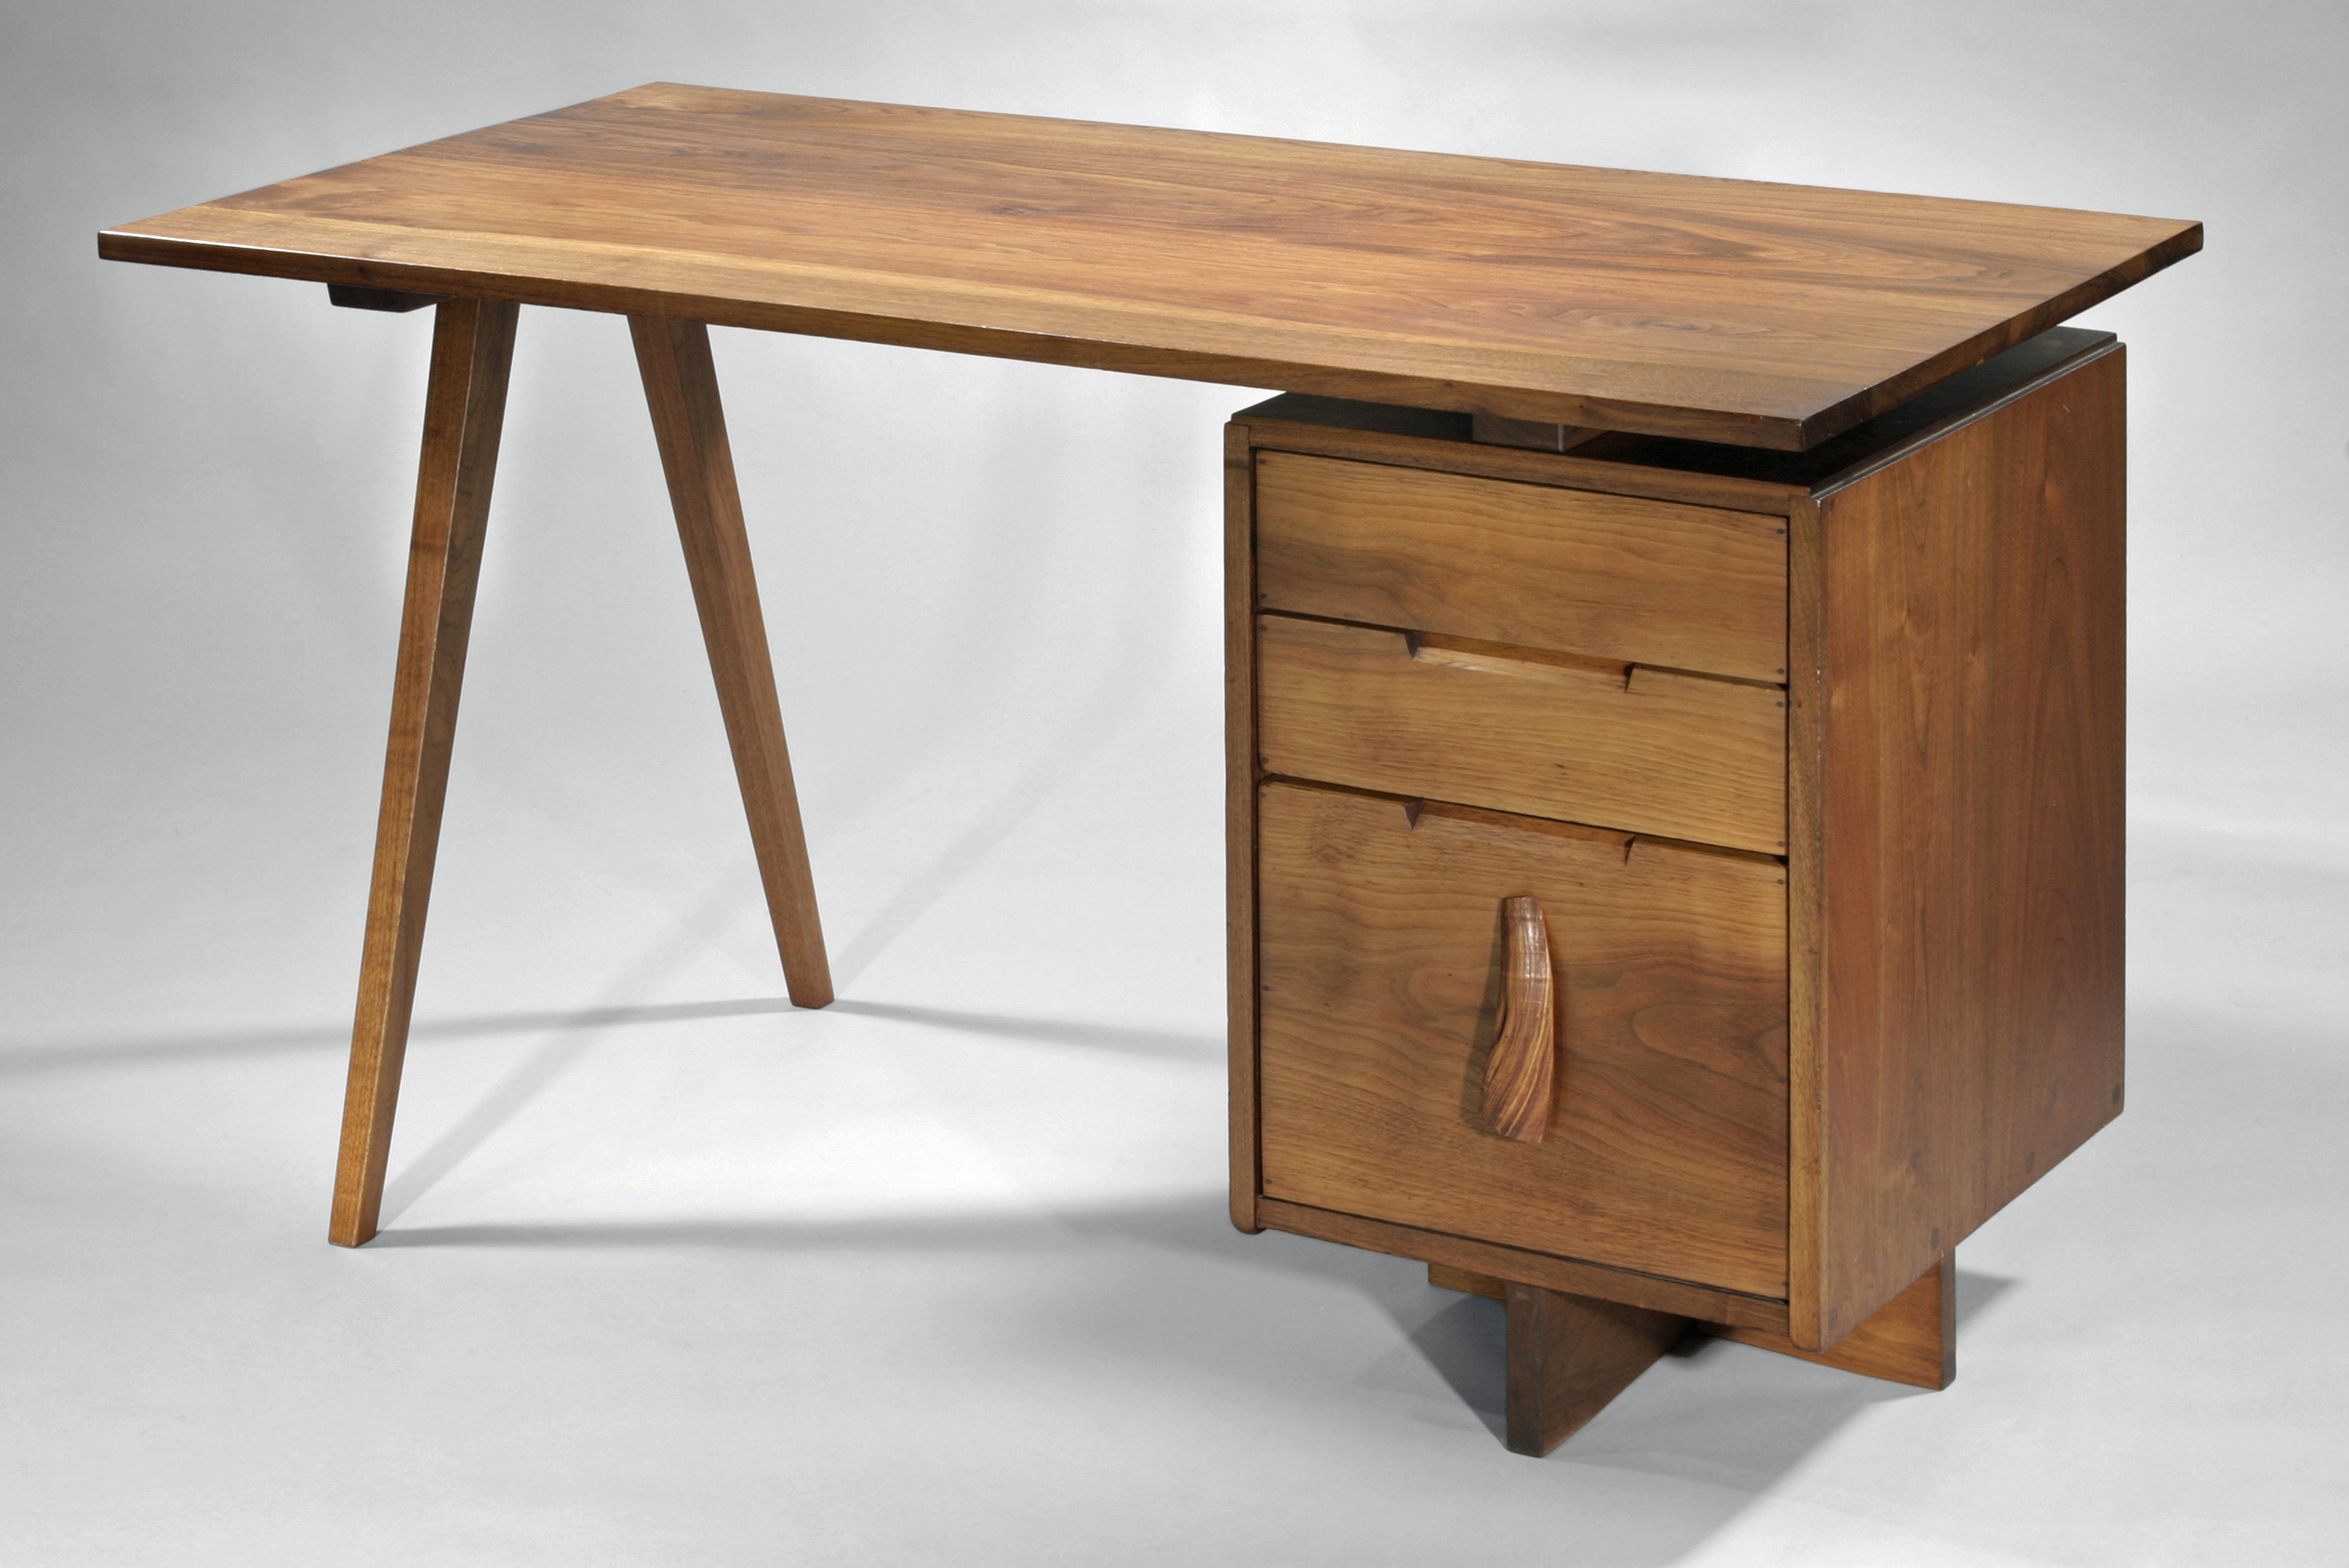 Historic Early Nakashima Furniture Exhibit At Philadelphia